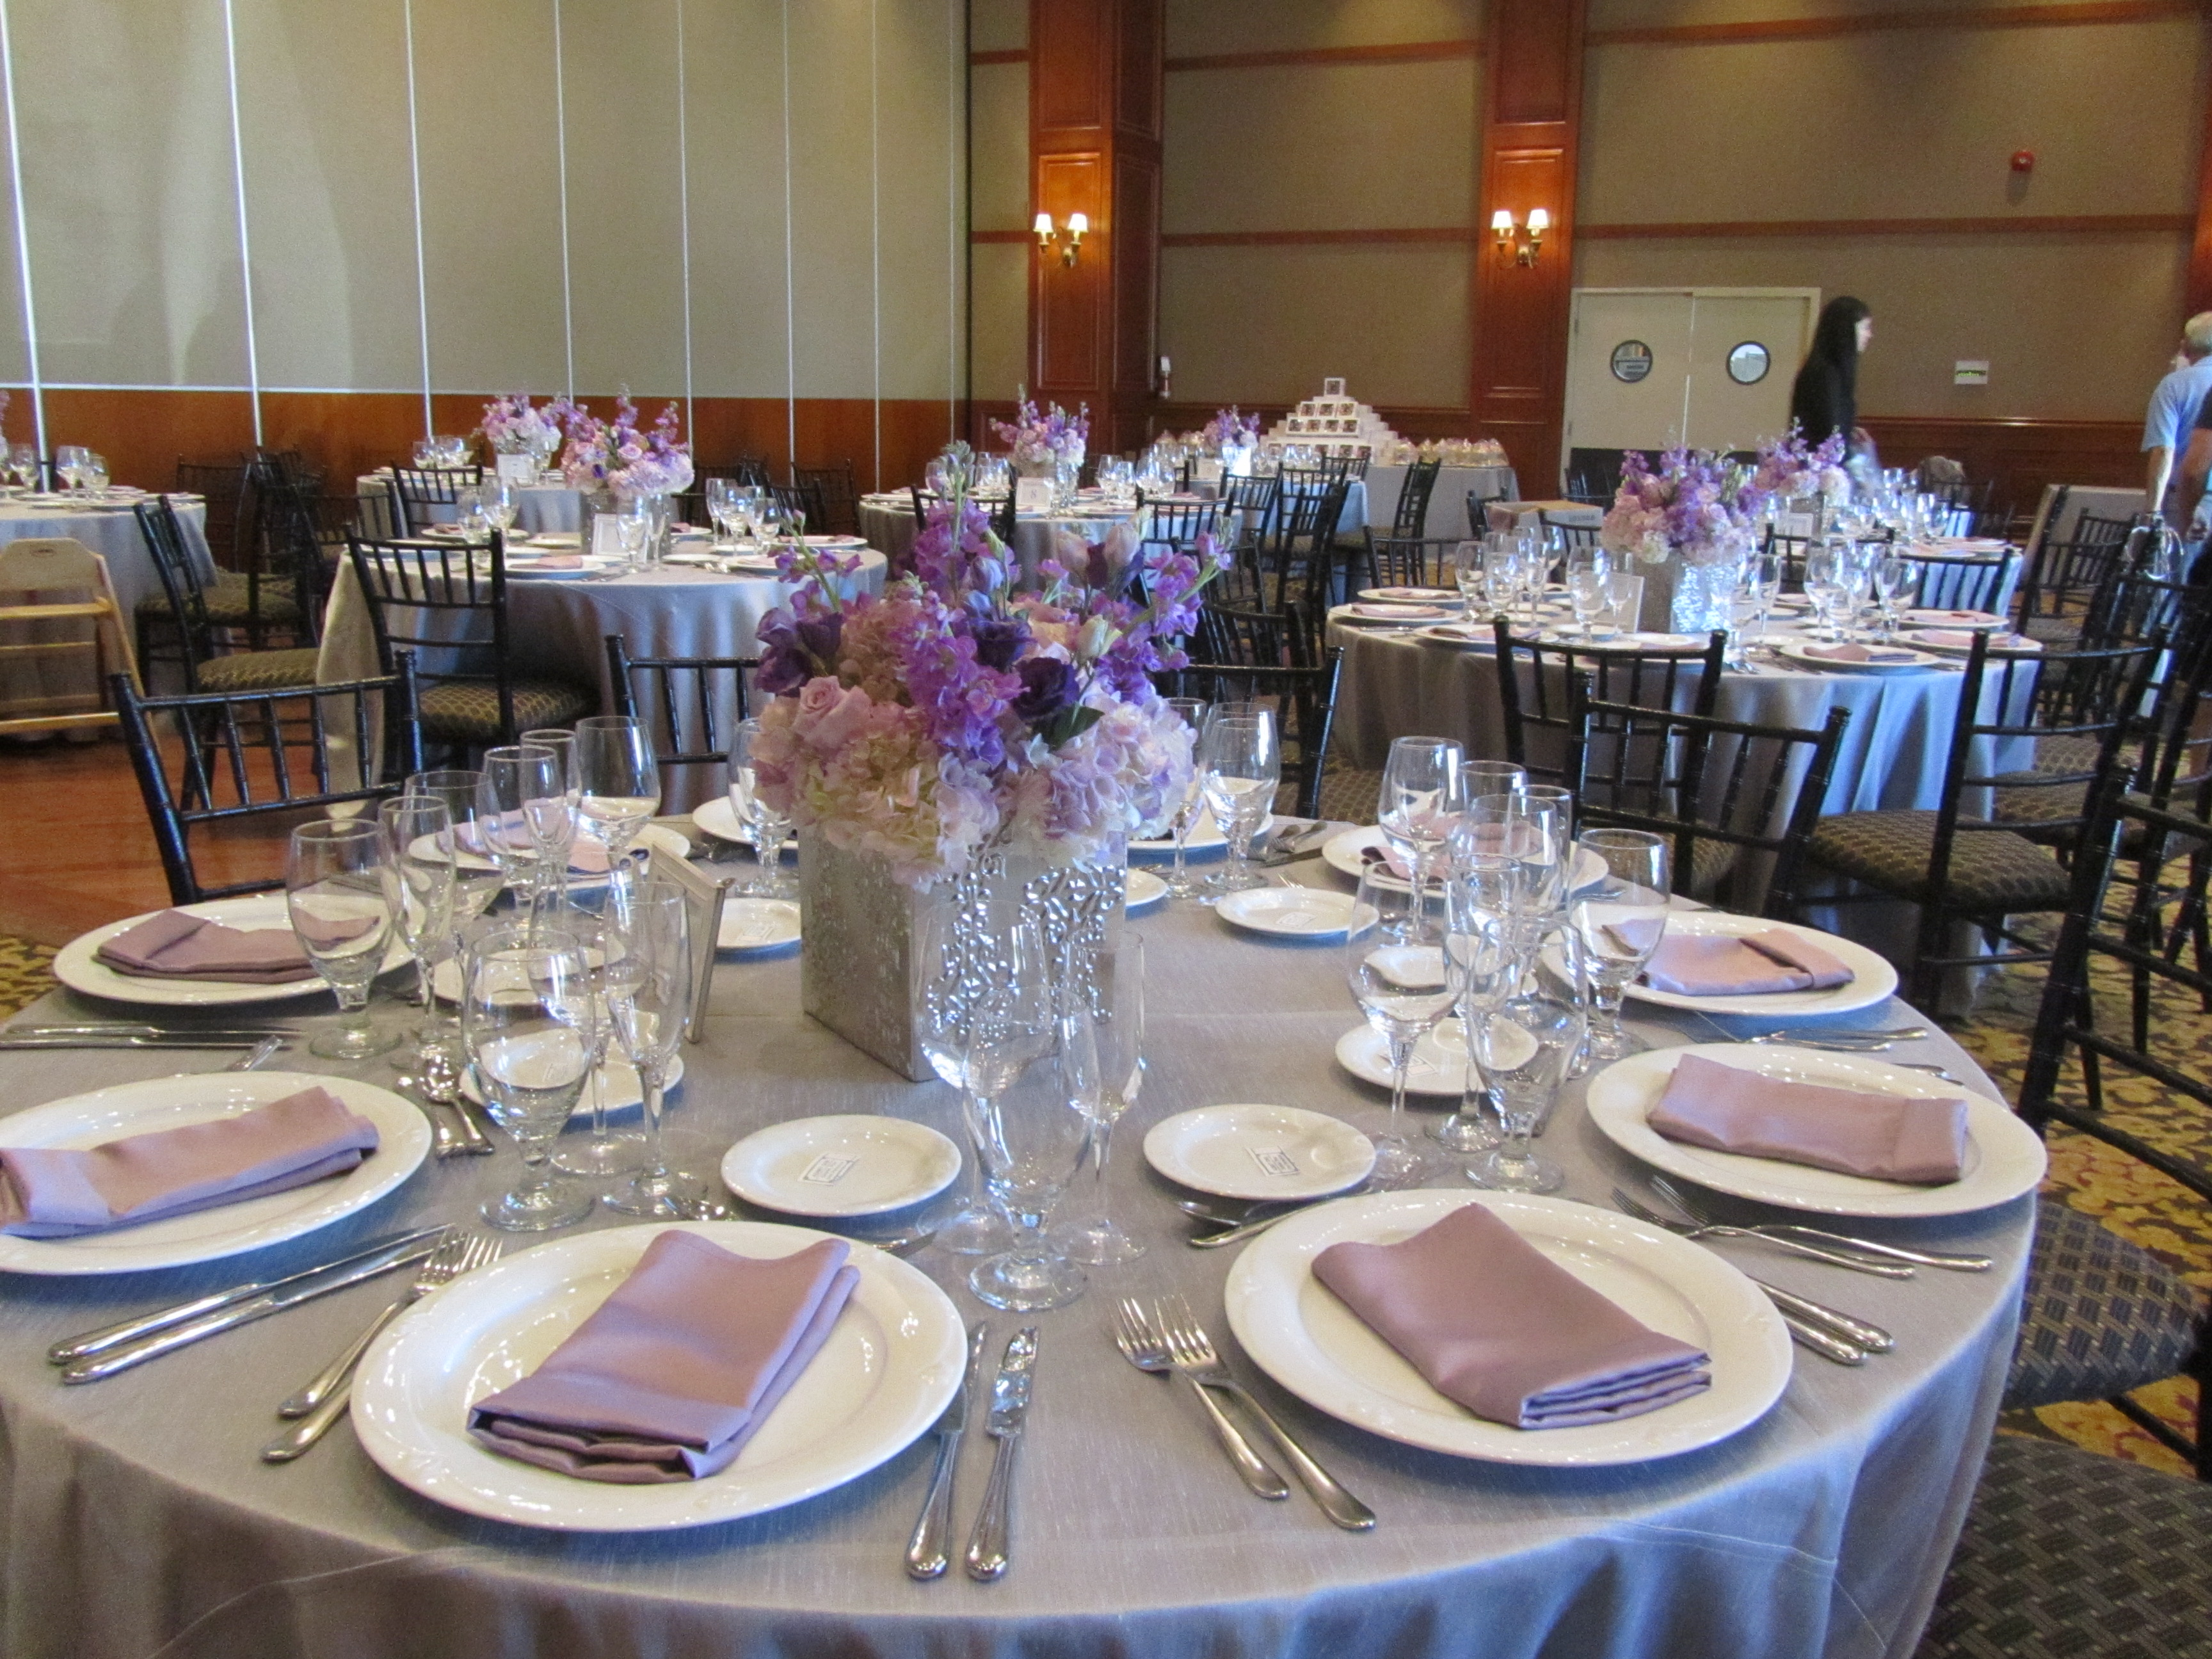 33 beautiful bridal shower decorations ideas table Wedding shower centerpieces